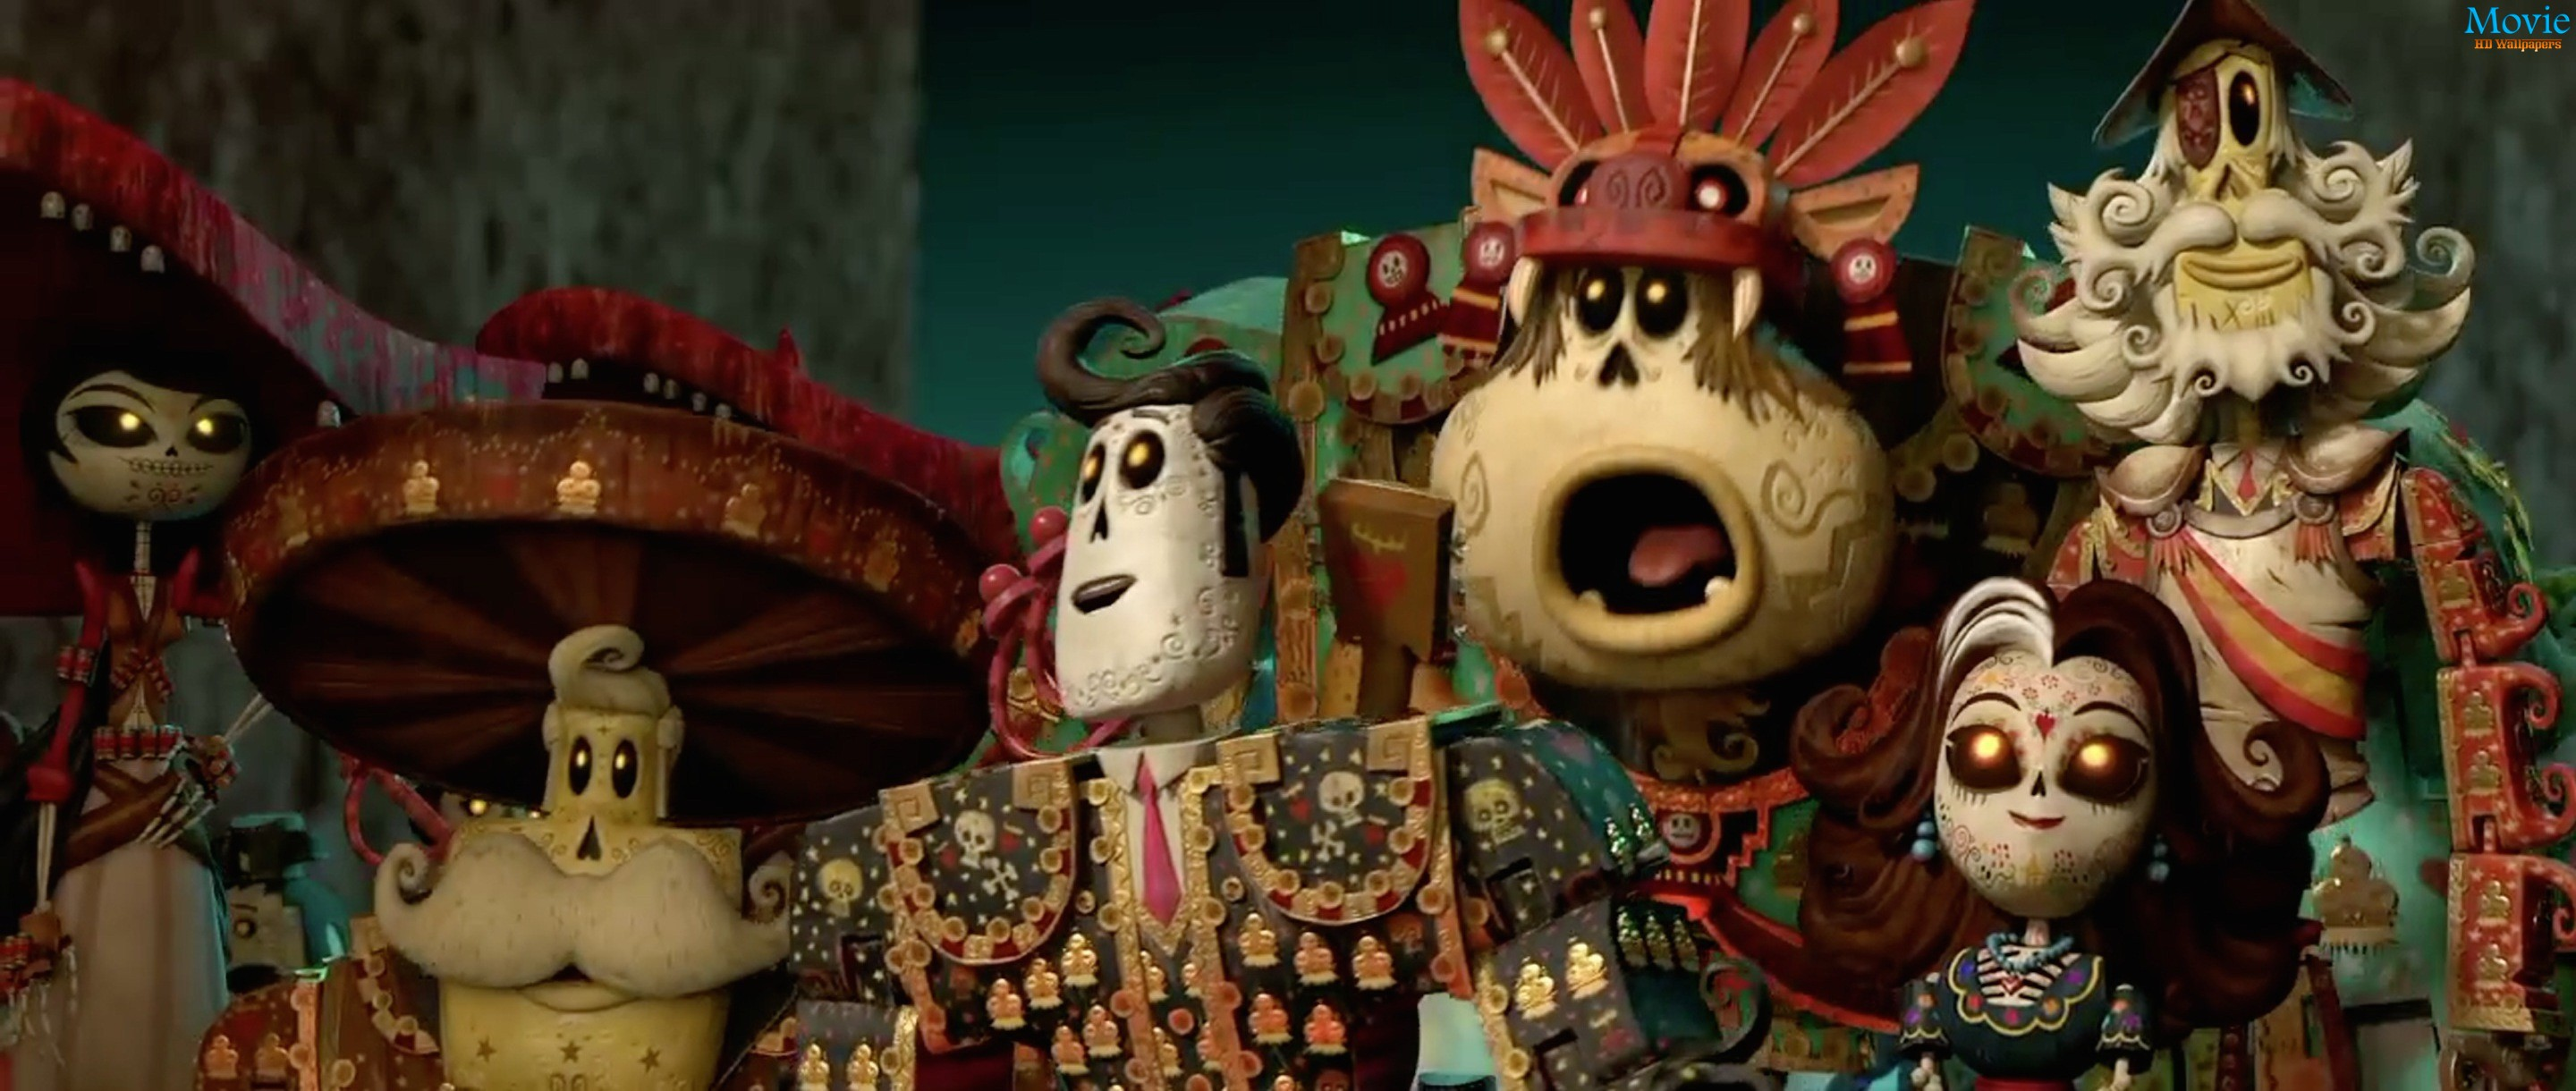 The Book of Life   Page 11782   Movie HD Wallpapers